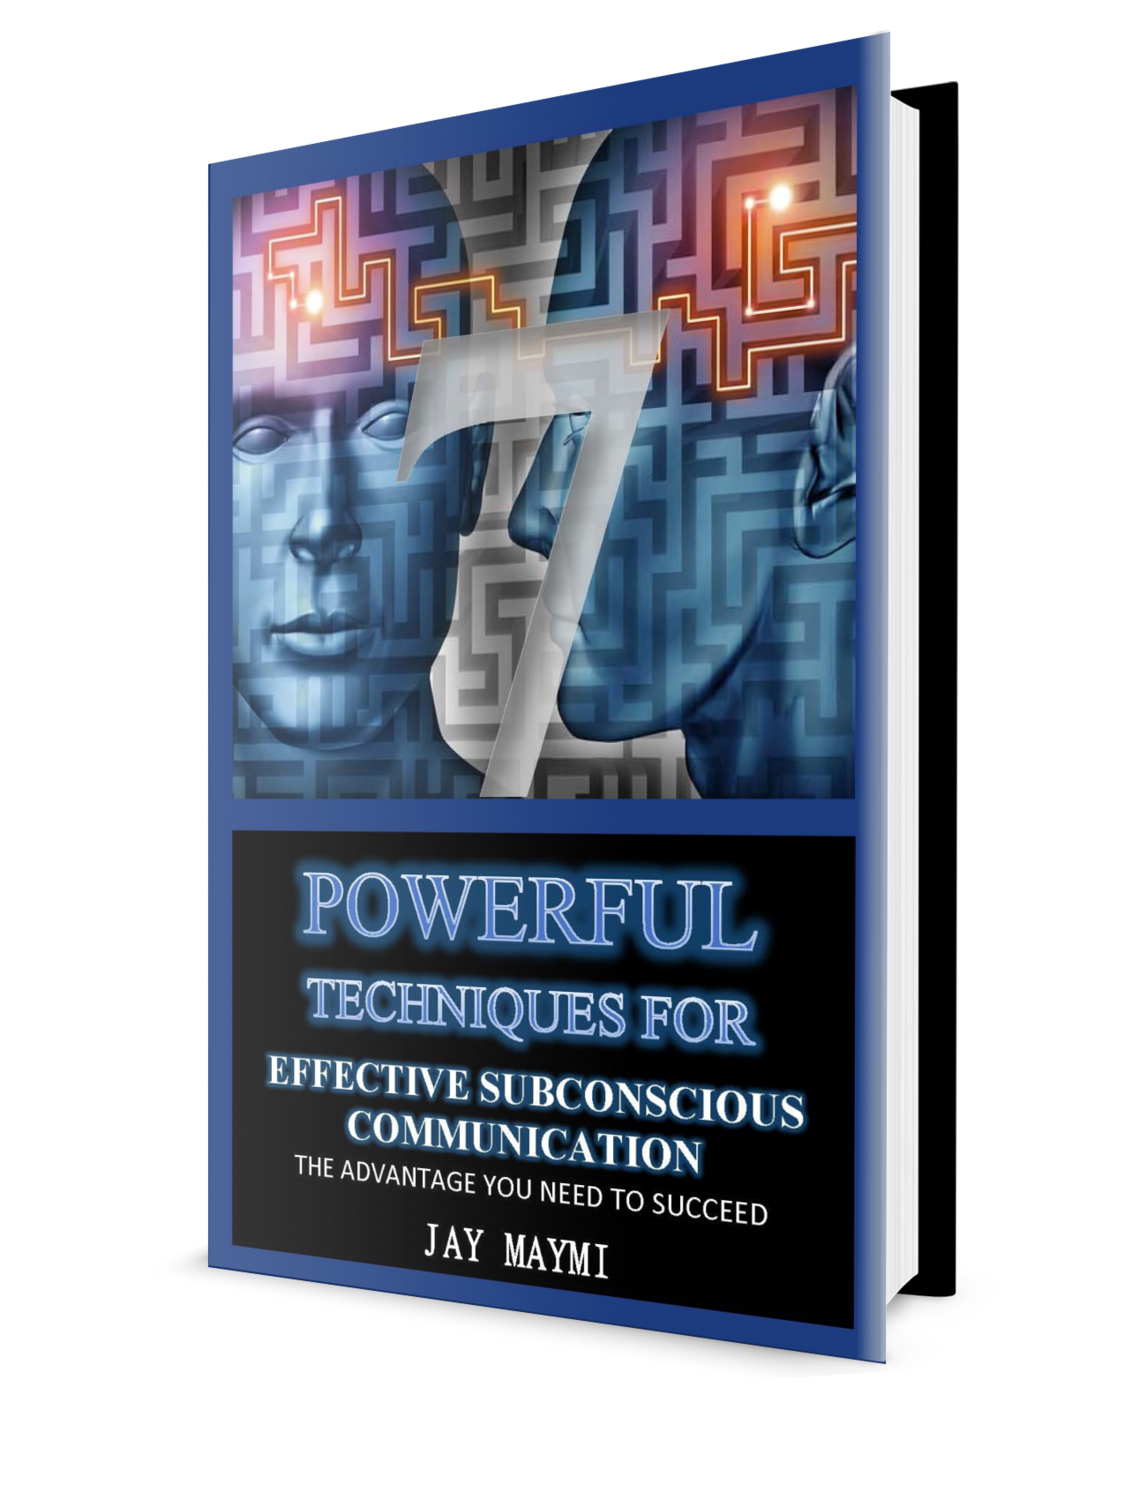 7 POWERFUL TECHNIQUES FOR EFFECTIVE SUBCONSCIOUS COMMUNICATION - ORDER TODAY!